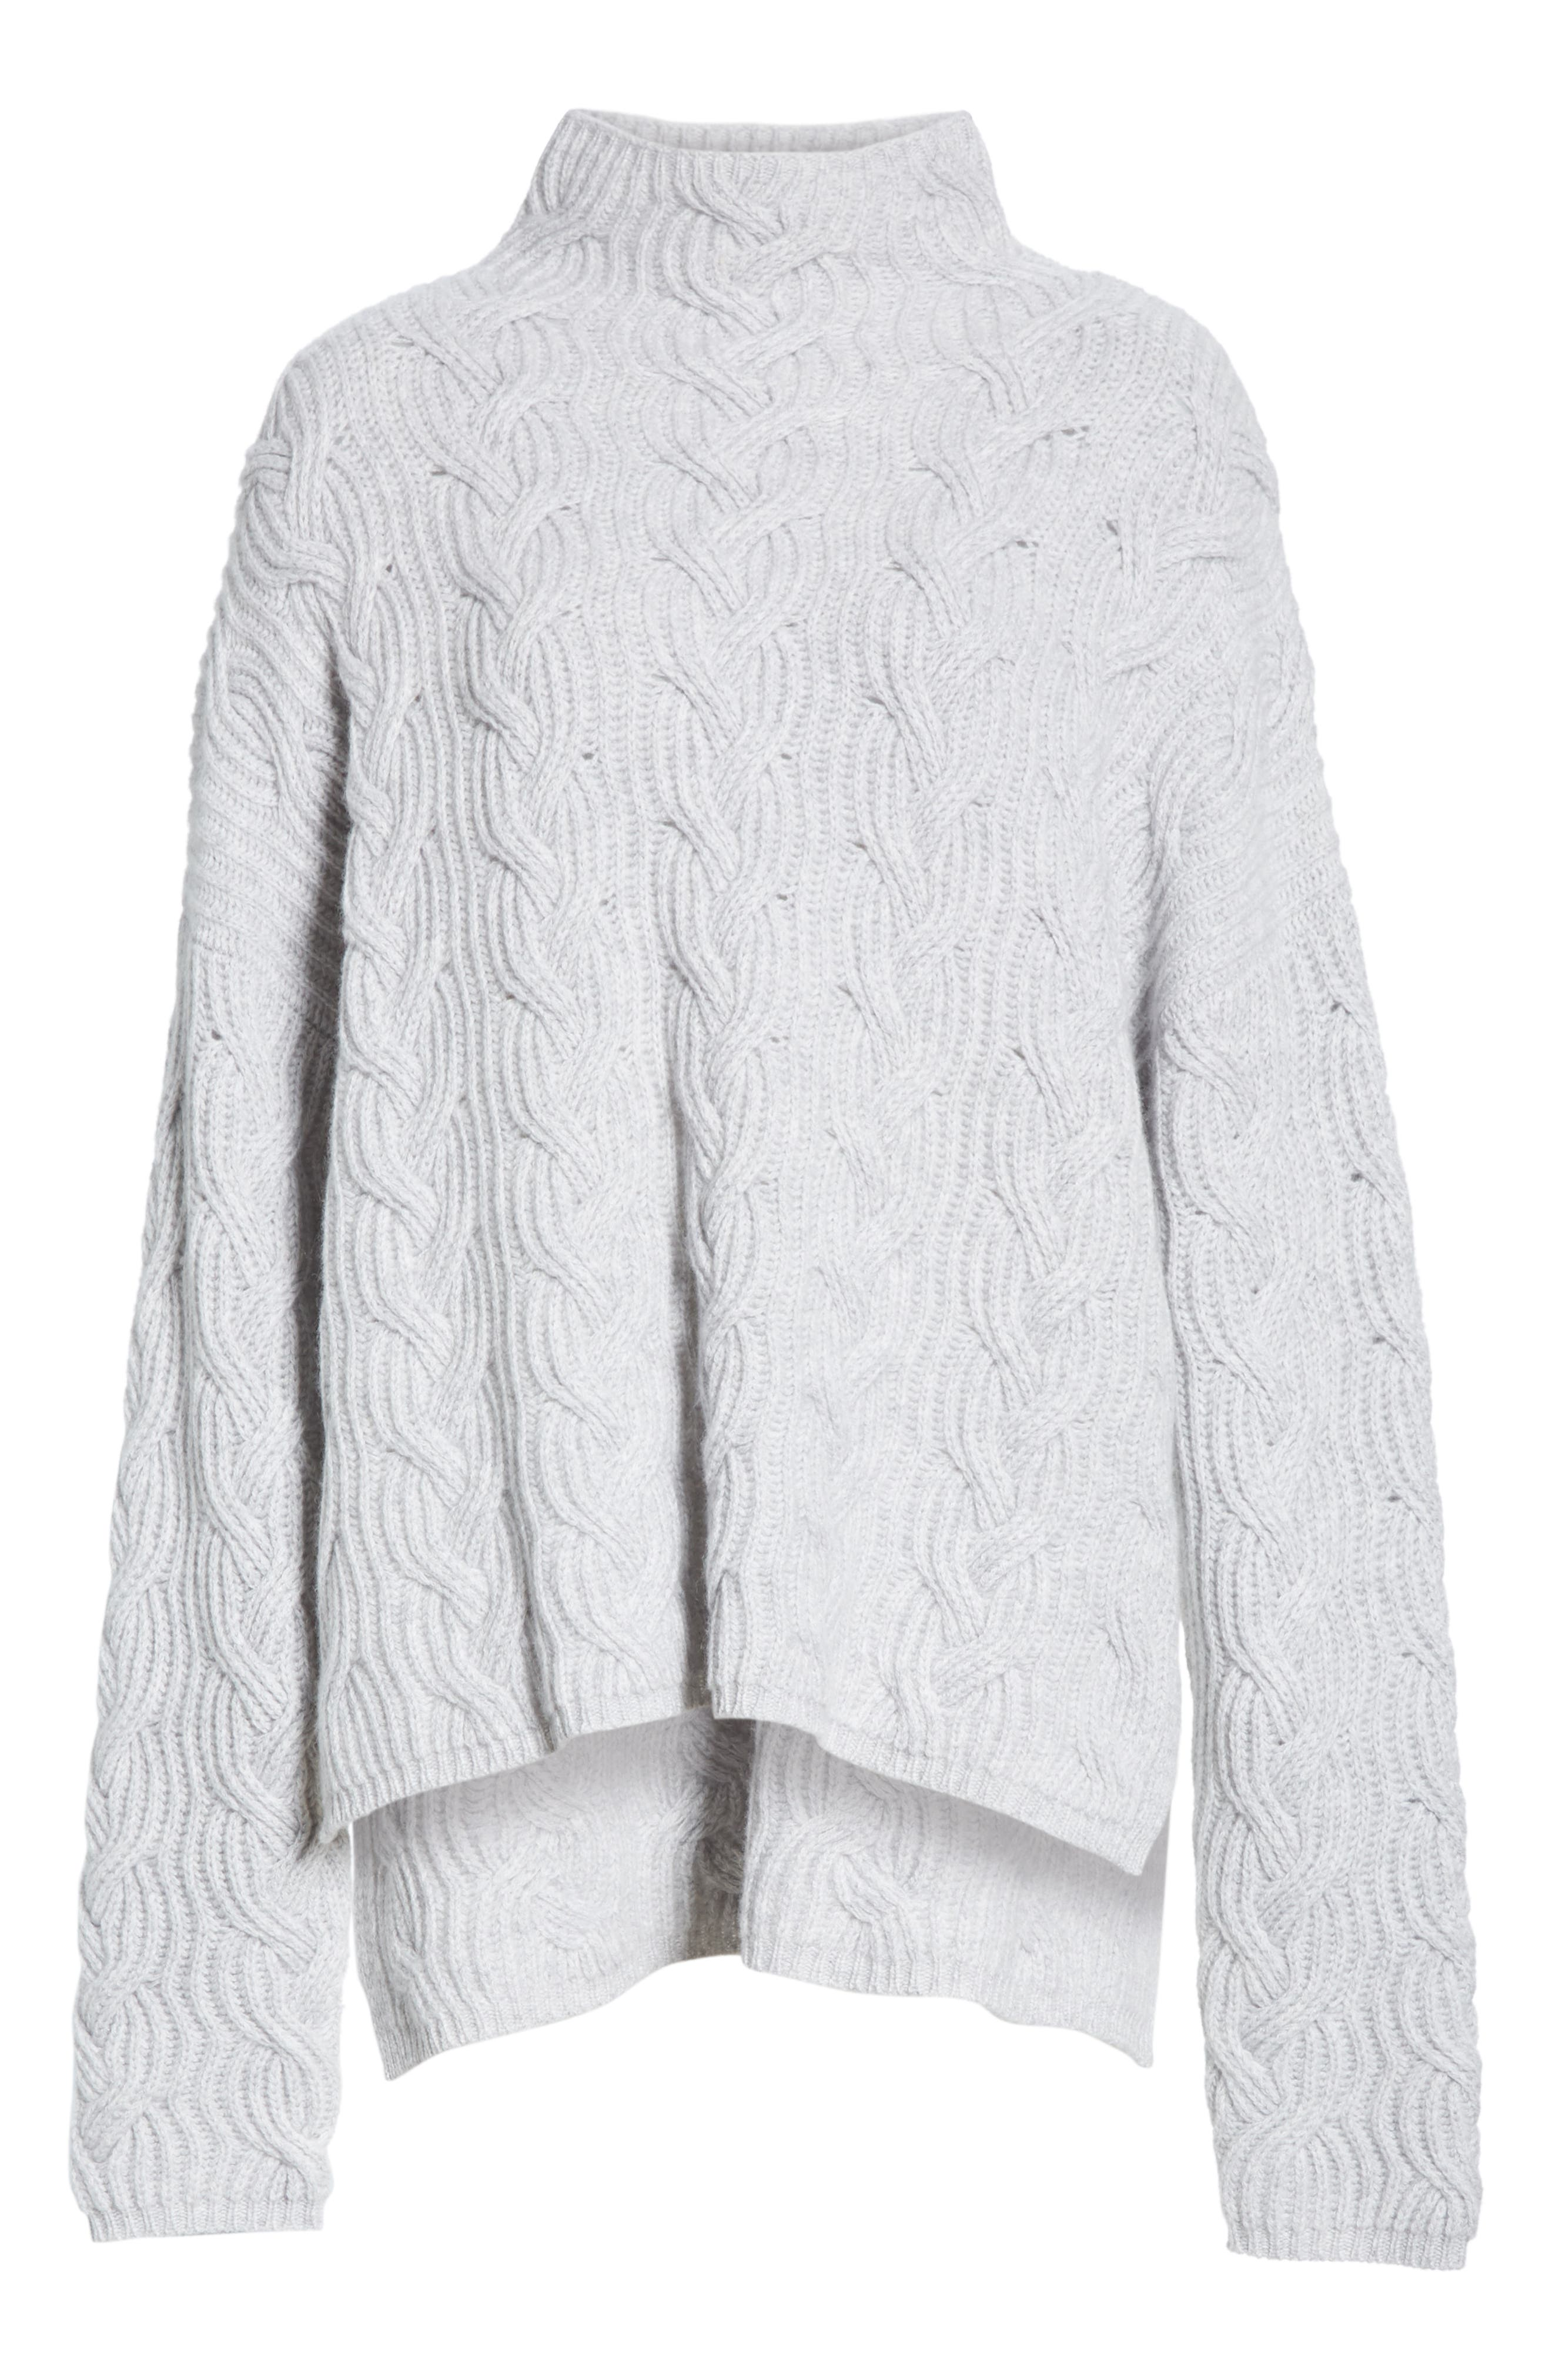 Cable Cashmere Knit Sweater,                             Alternate thumbnail 6, color,                             050